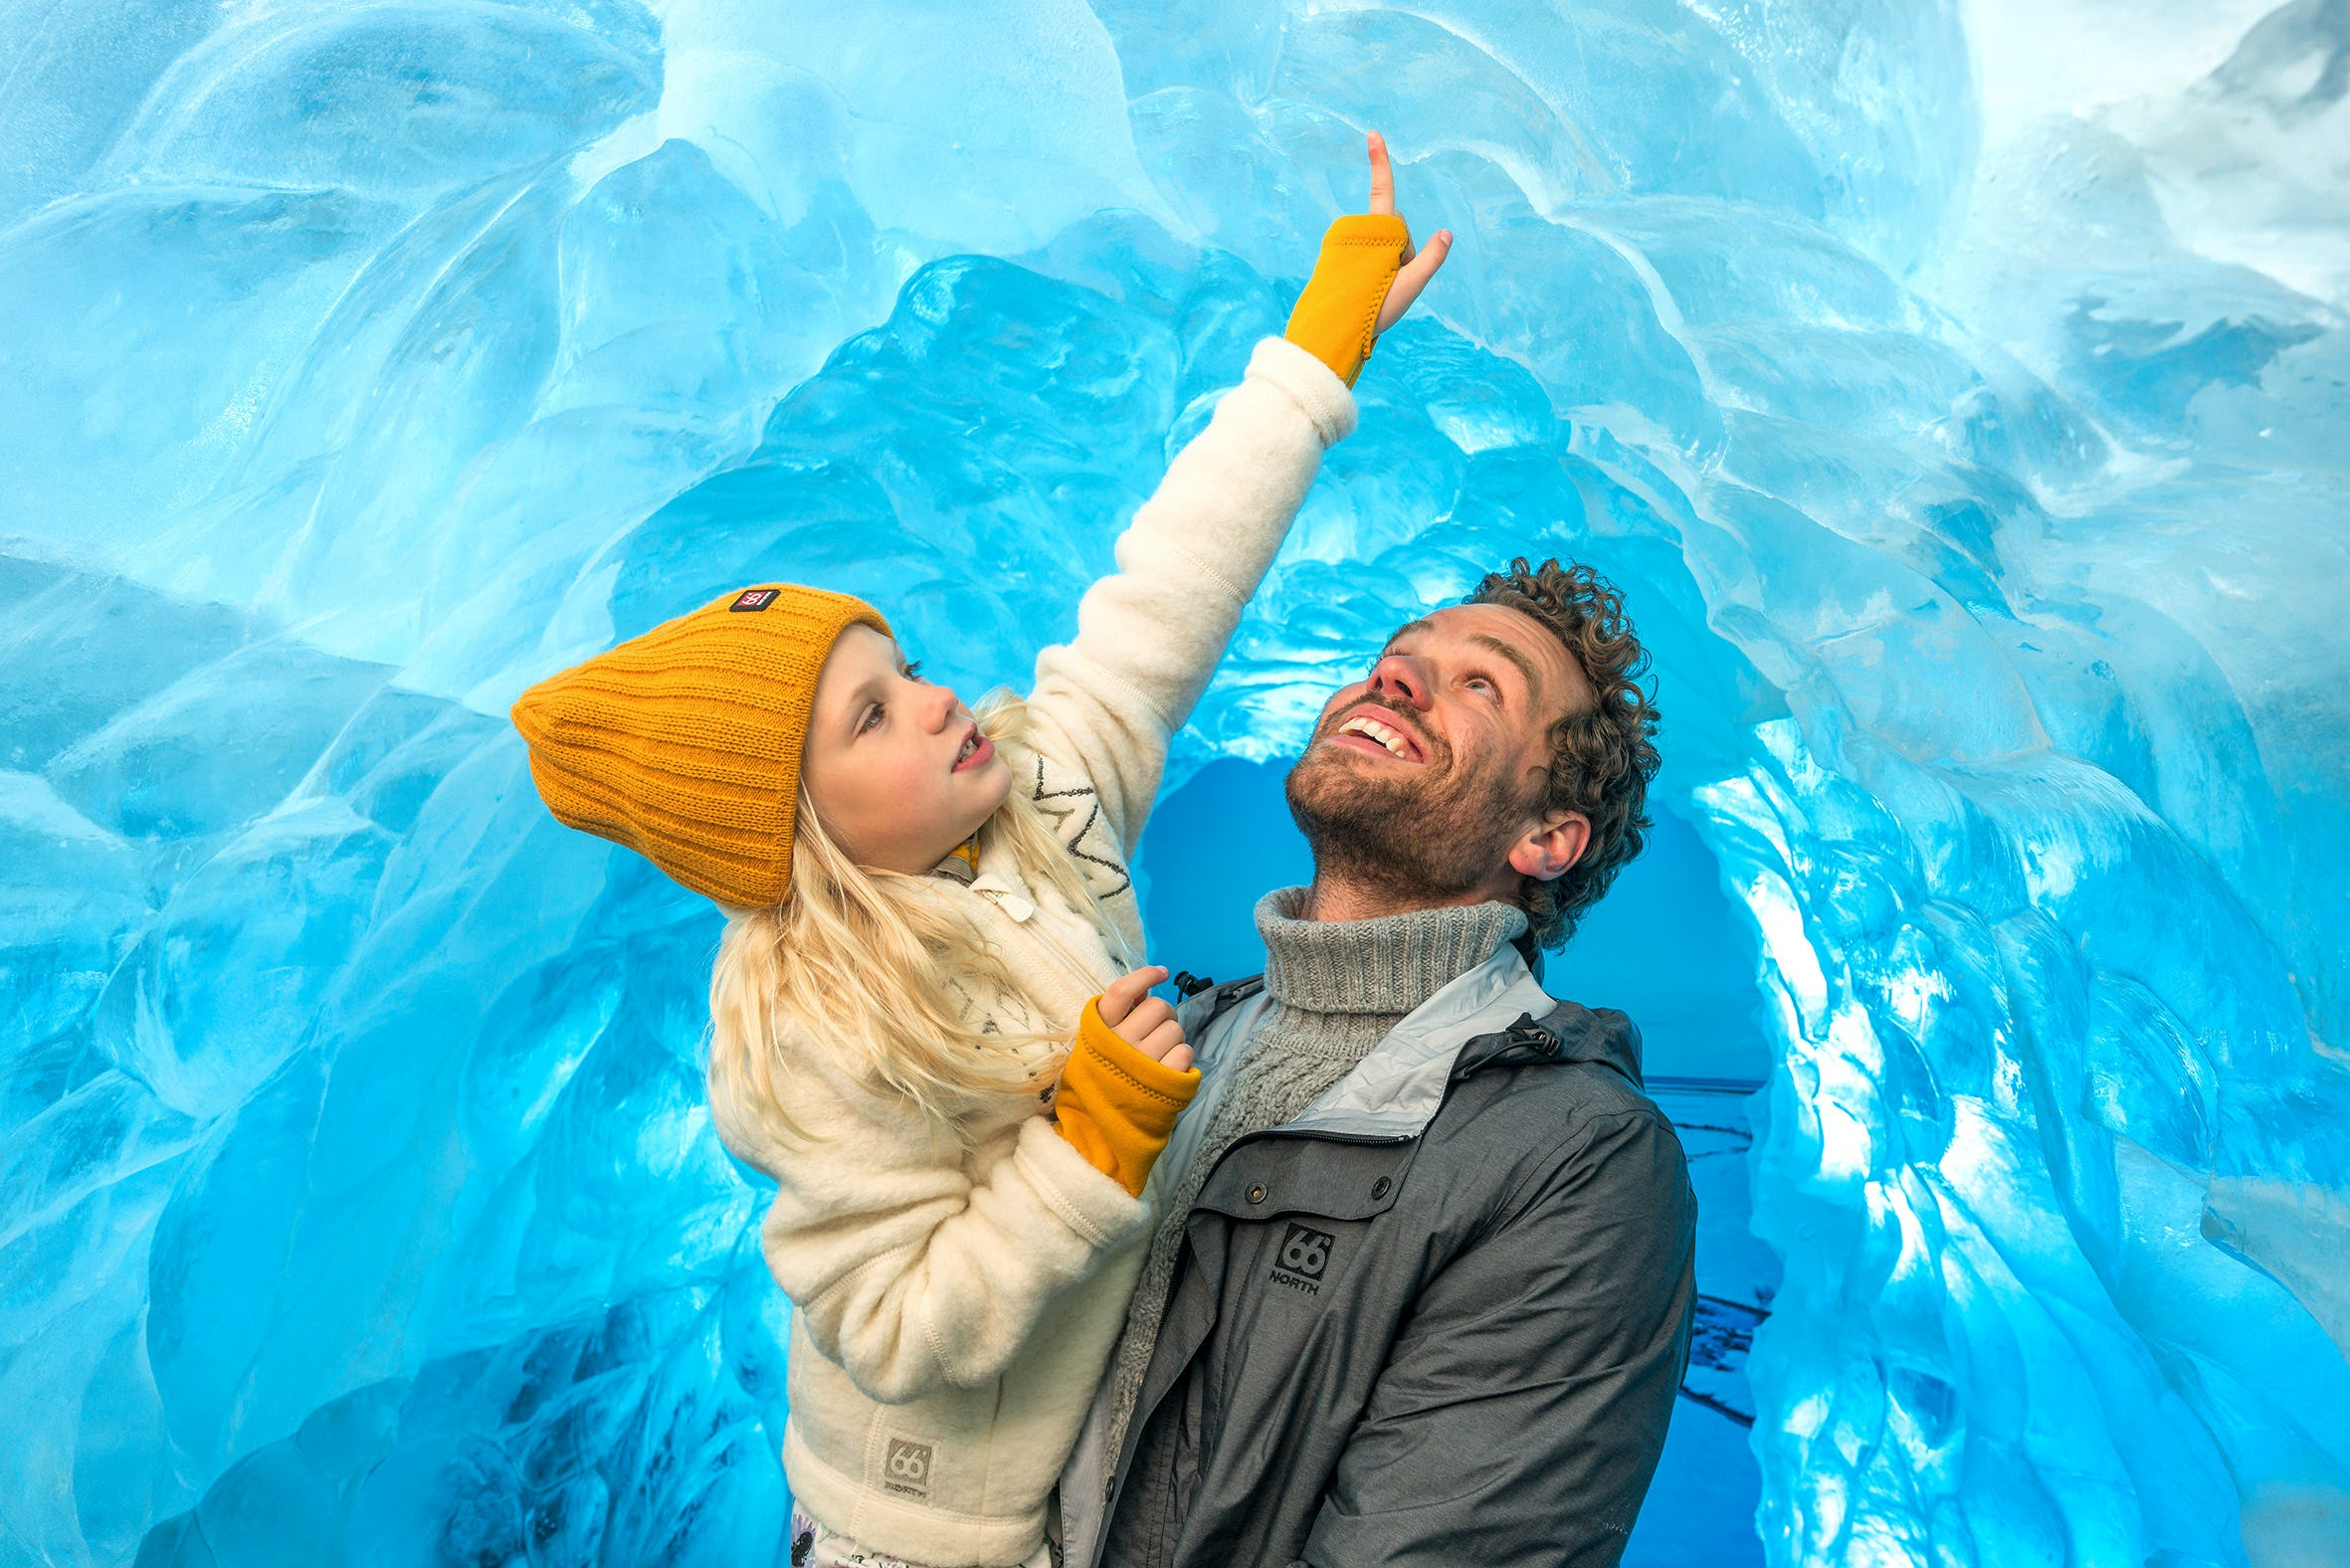 The Perlan Museum Glacier & Ice Cave Exhibition is an exciting activity for the whole family!